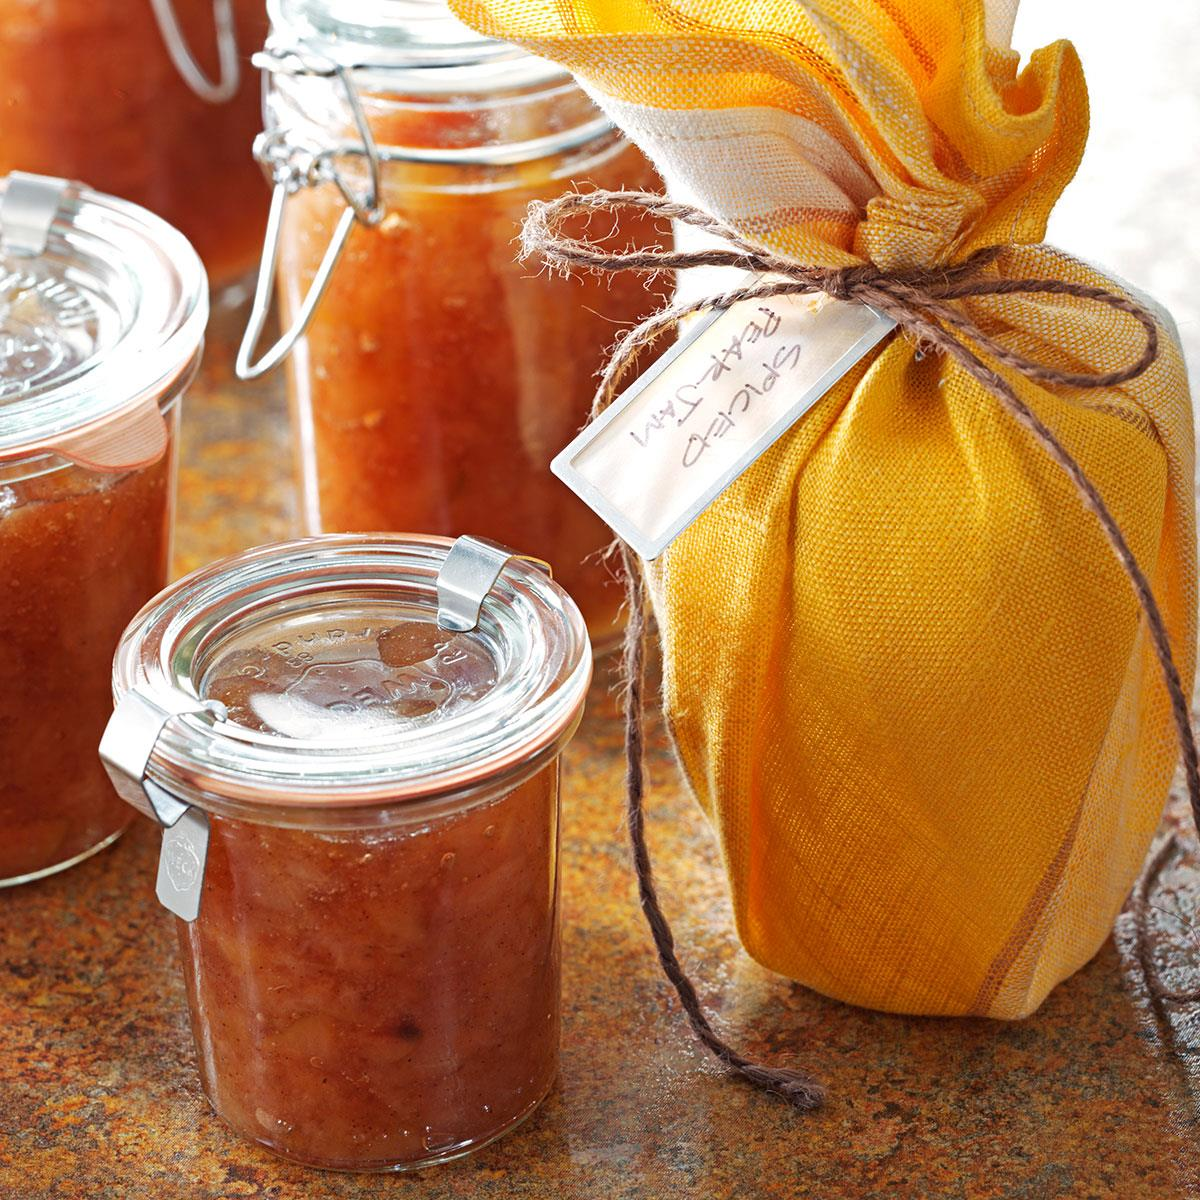 The most delicious pear jam: cooking with love 13